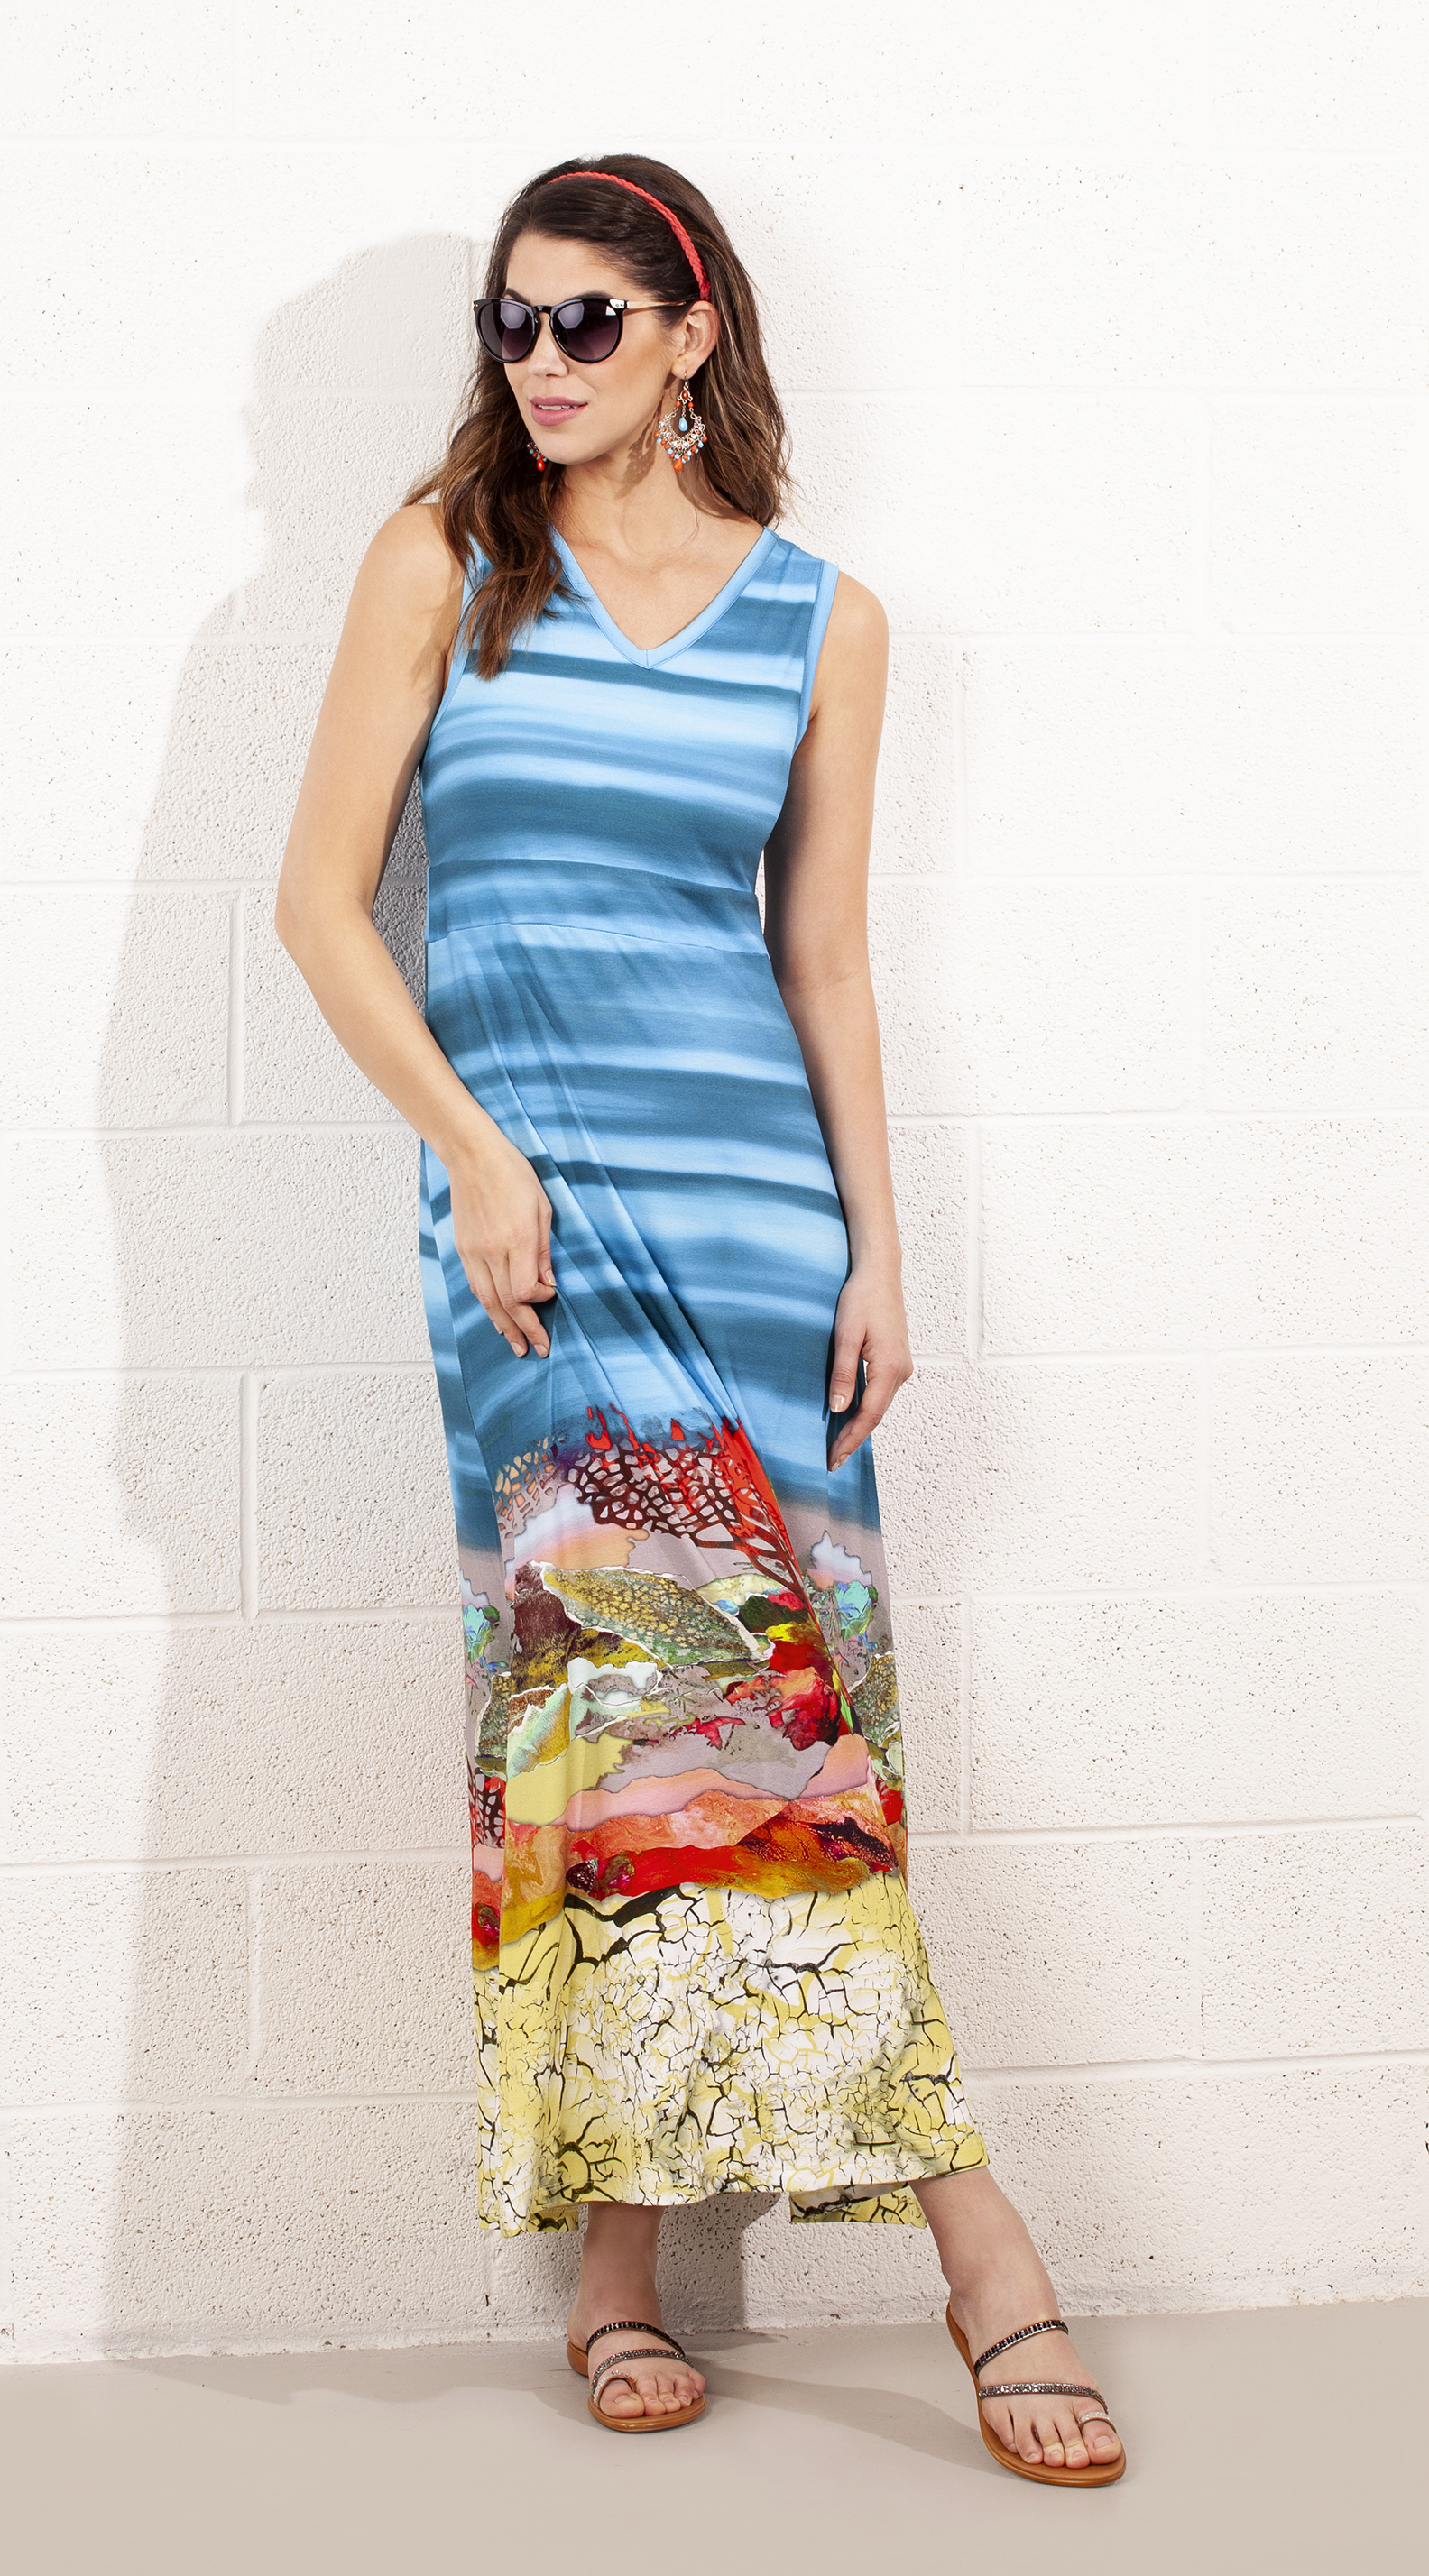 Dolcezza: Under The Sea Coral Scene Art Maxi Dress (1 Left!) DOLCEZZA_19213